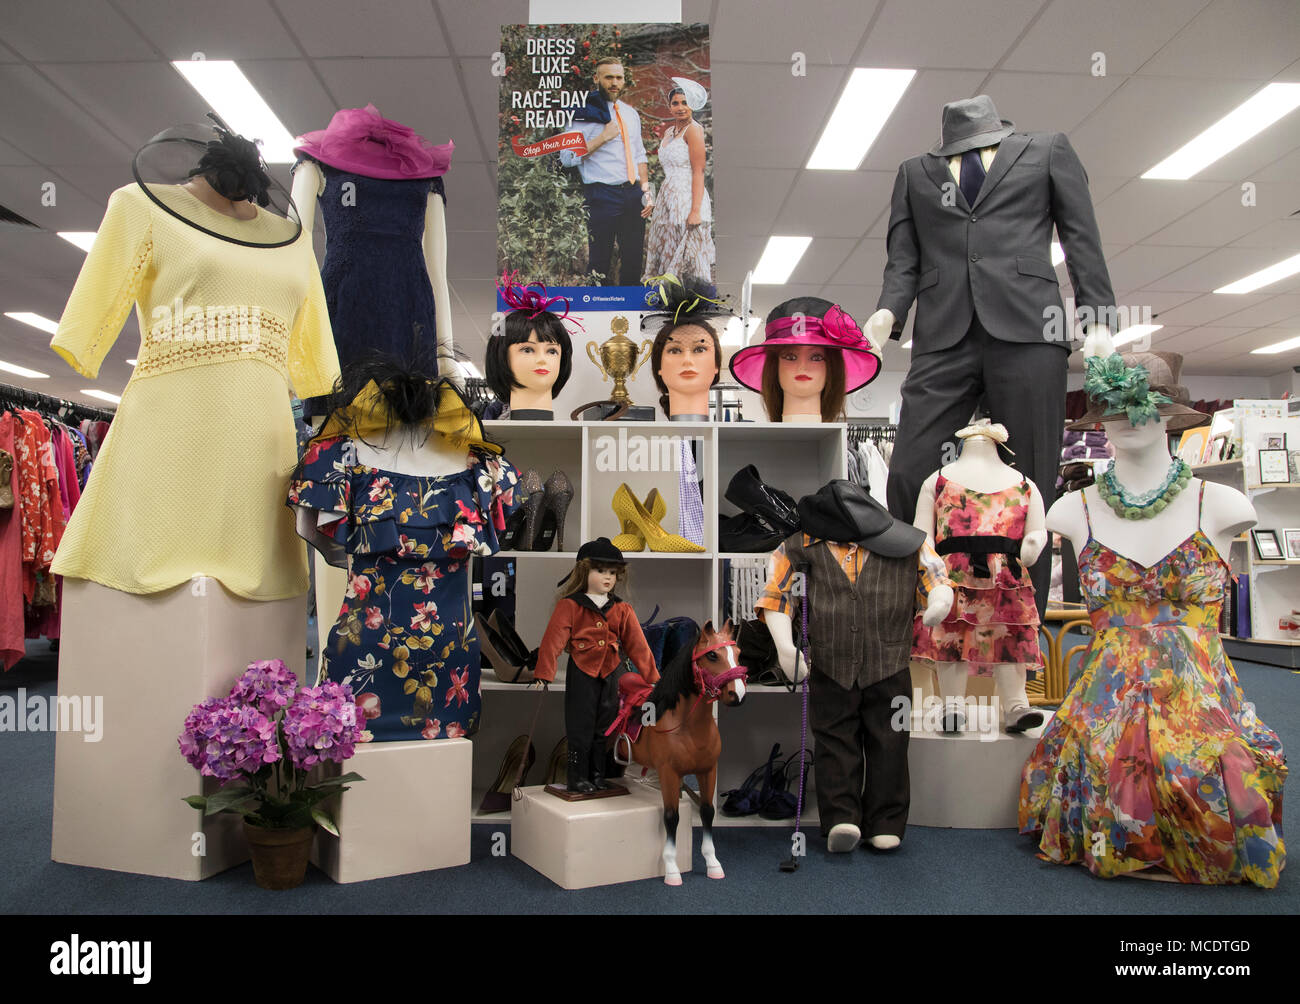 Melbourne Cup Display, Vinnies Stores, Australia - Stock Image